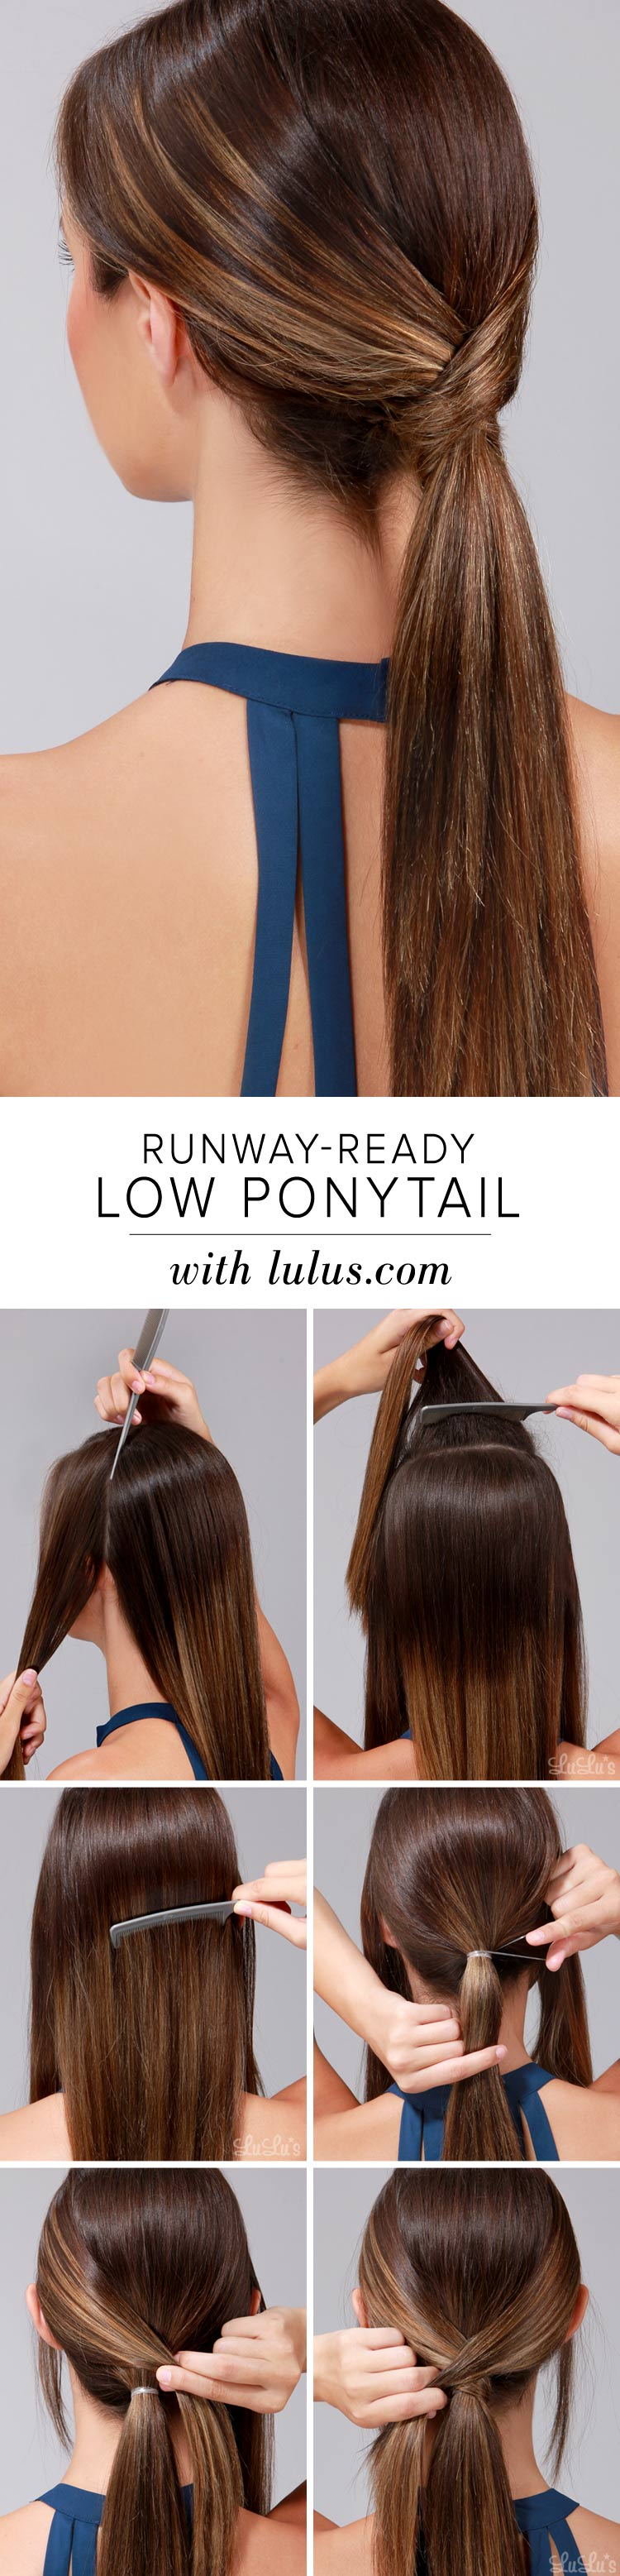 Runway-Ready Low Ponytail